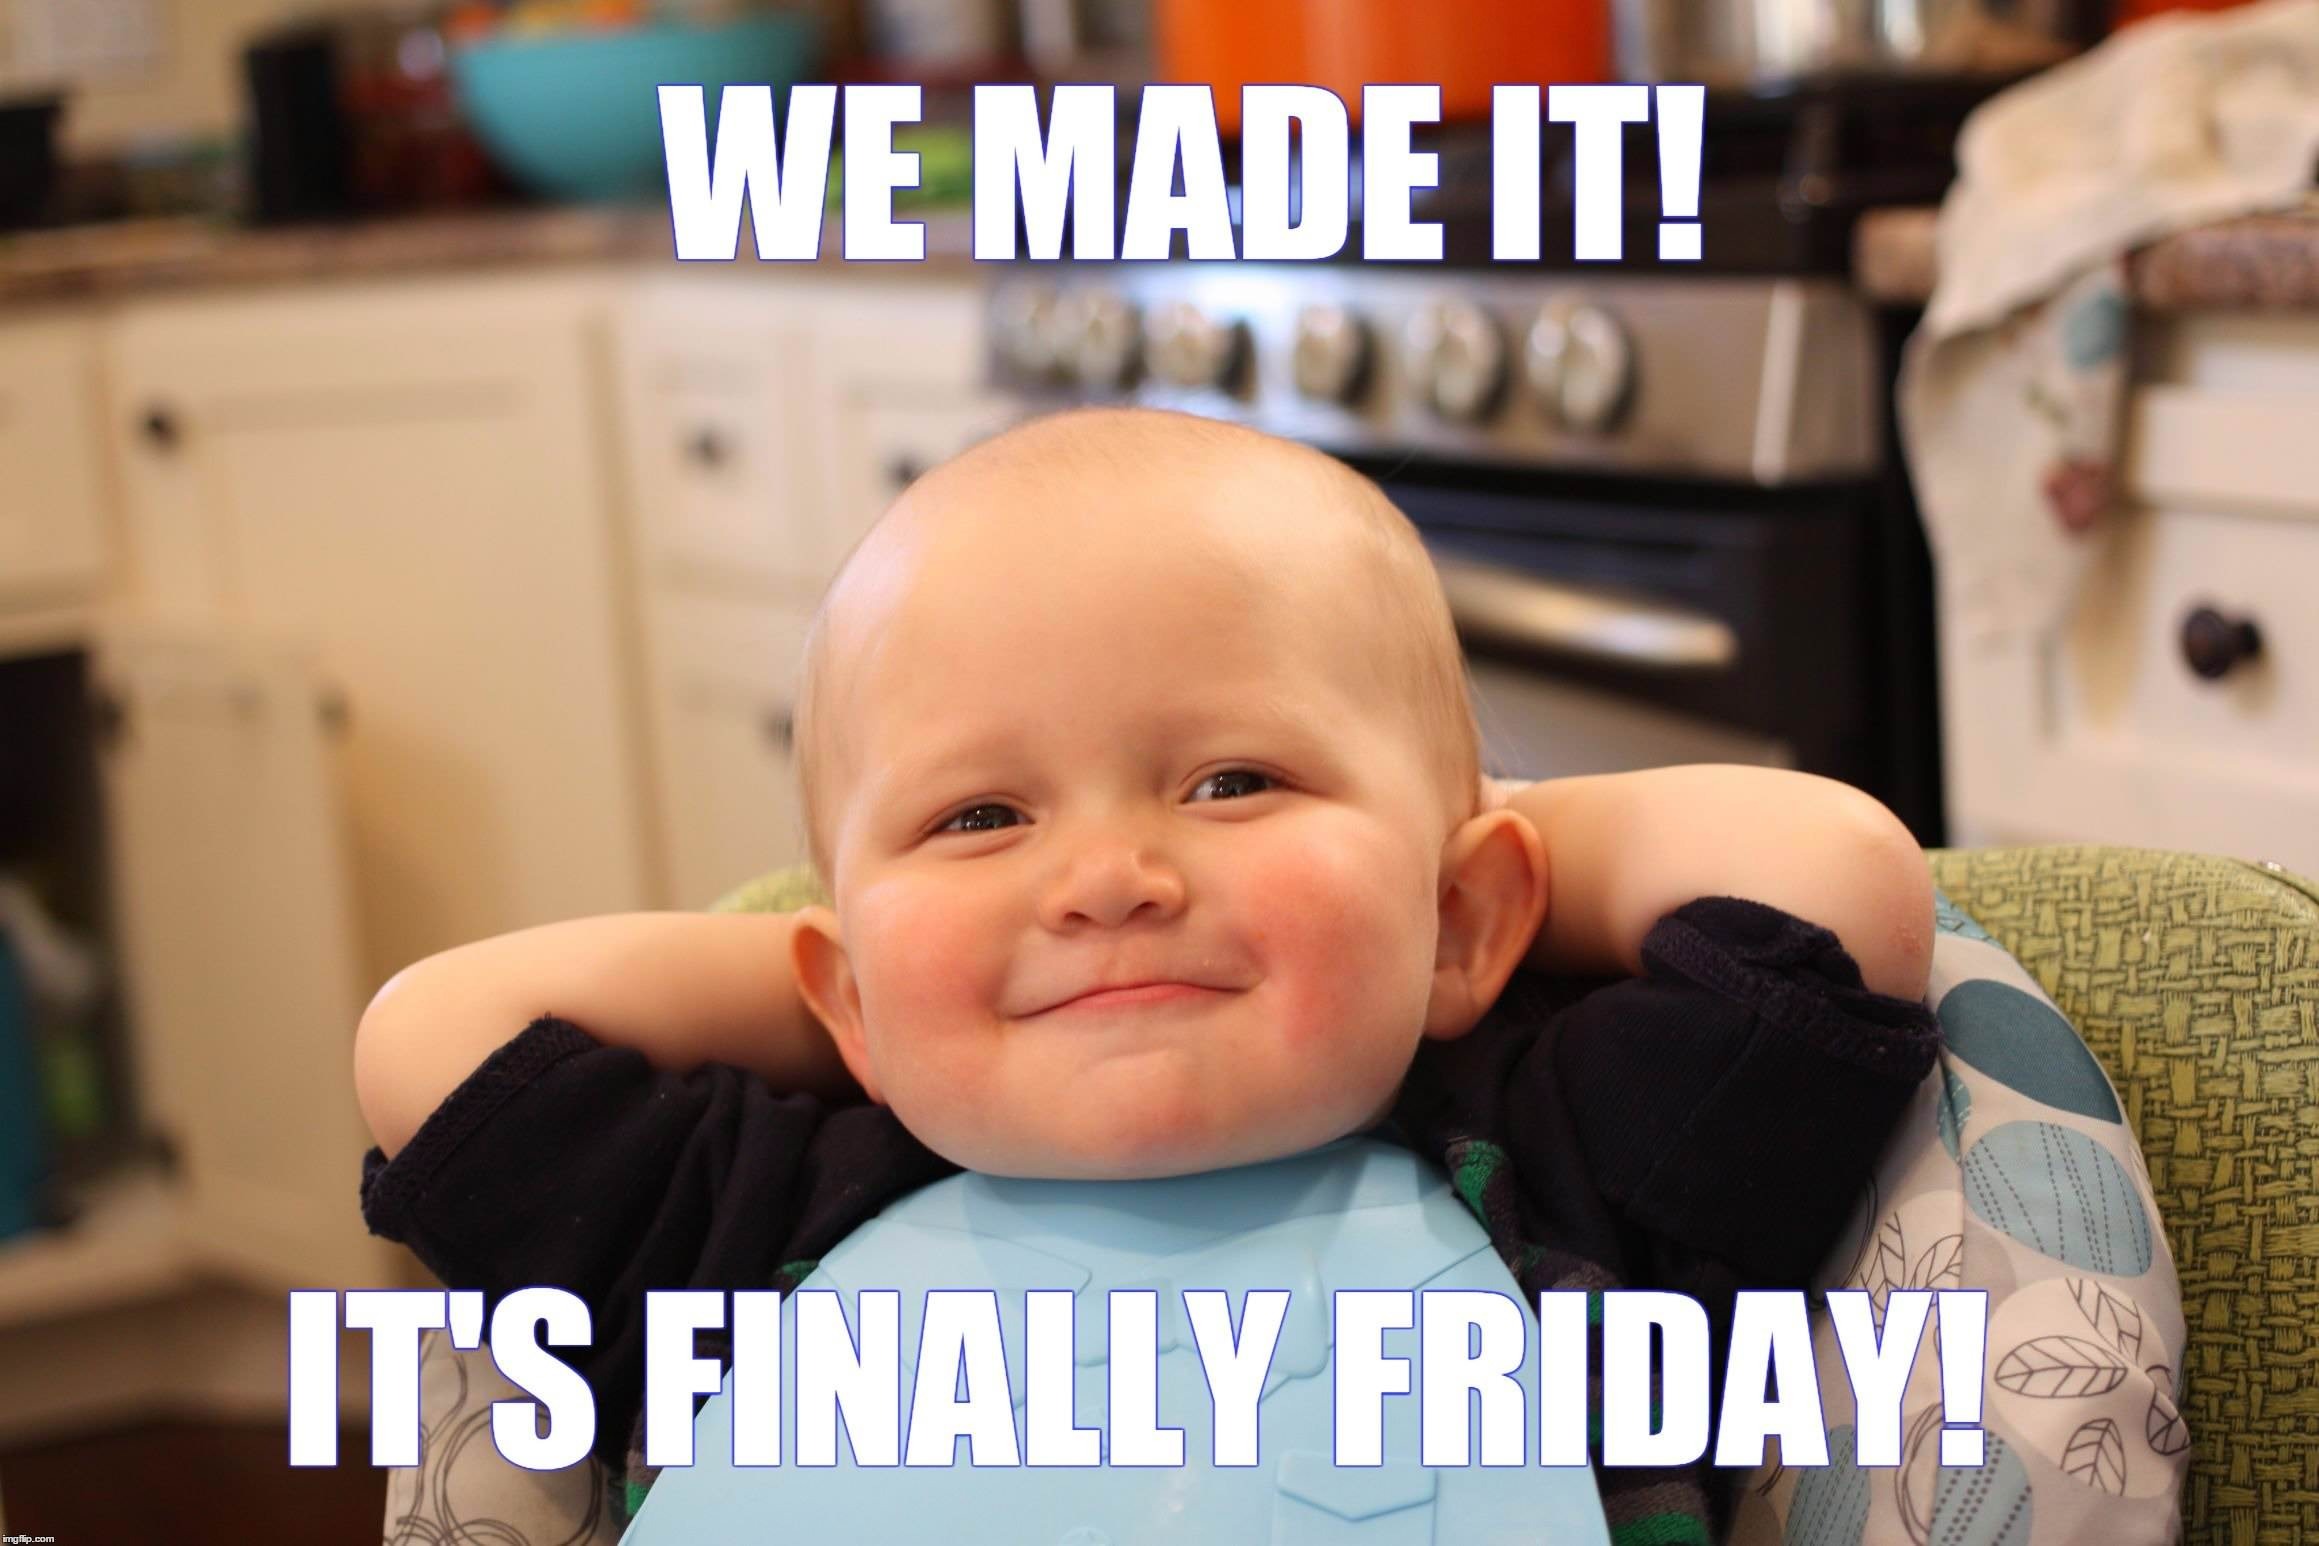 Cute baby on Friday meme. Its finally Friday thank god it's friday! funny friday stuff to share